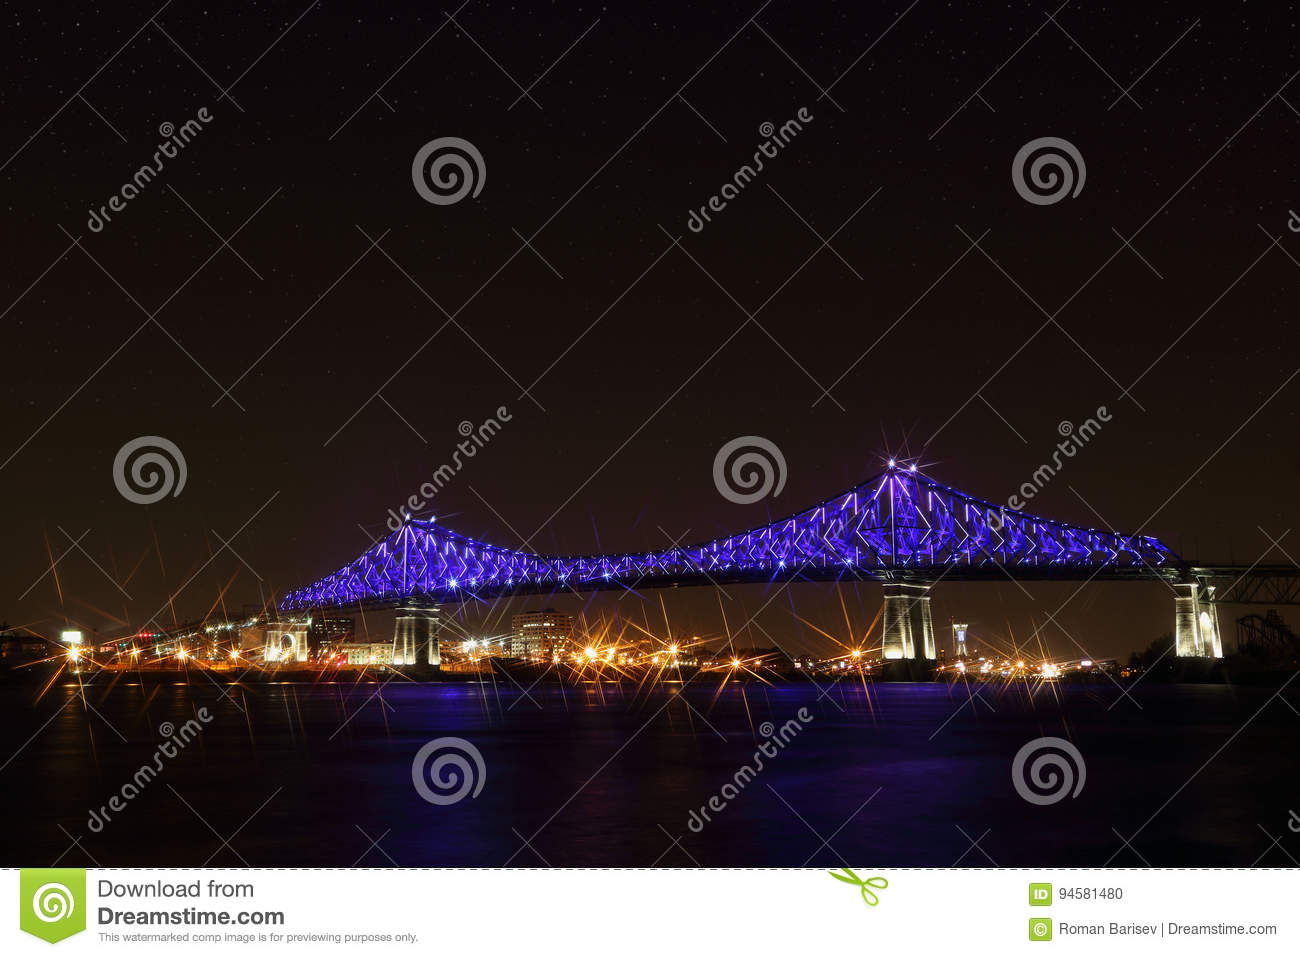 Jacques Cartier Bridge Illumination in Montreal, reflection in water. Montreal's 375th anniversary.